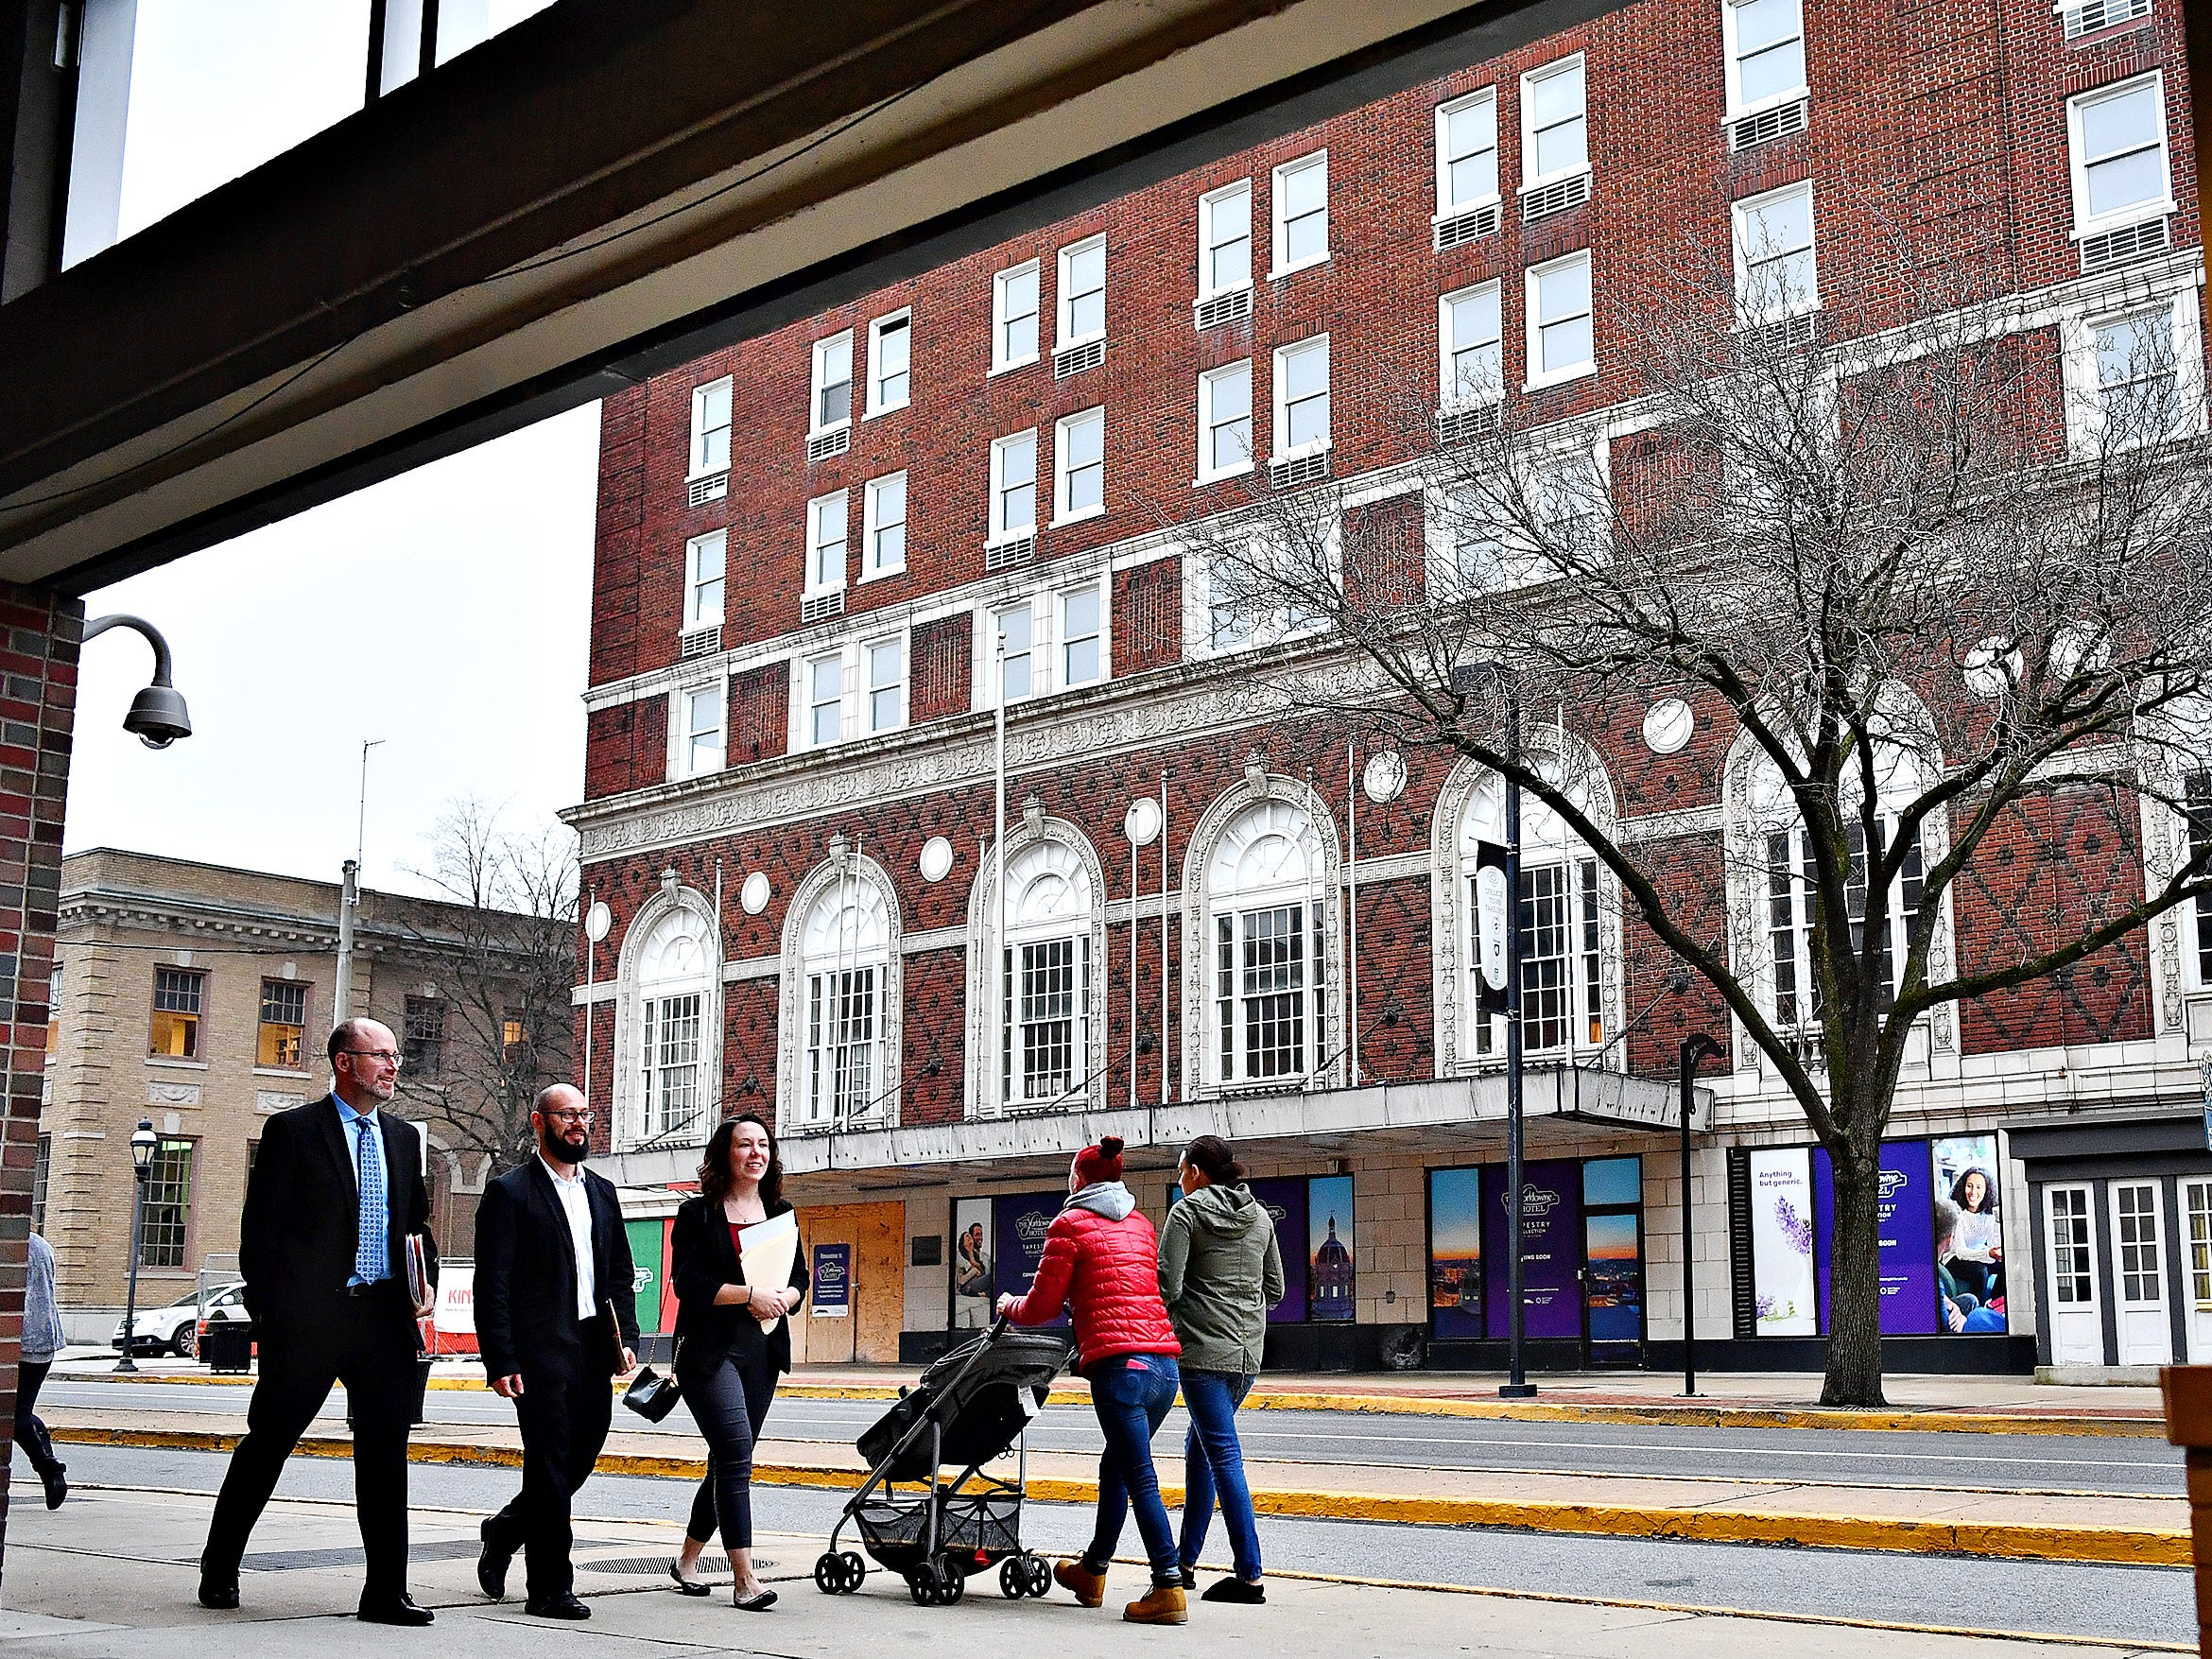 From left, Mark Duffie, of Fairview Township, Alison Irizarry, and Nick Irizarry, both of Dover Township walk across the street from the Yorktowne Hotel in York City, Thursday, Feb. 7, 2019. Yorktowne Hotel renovation costs have nearly doubled since original 2016 announcement. Dawn J. Sagert photo